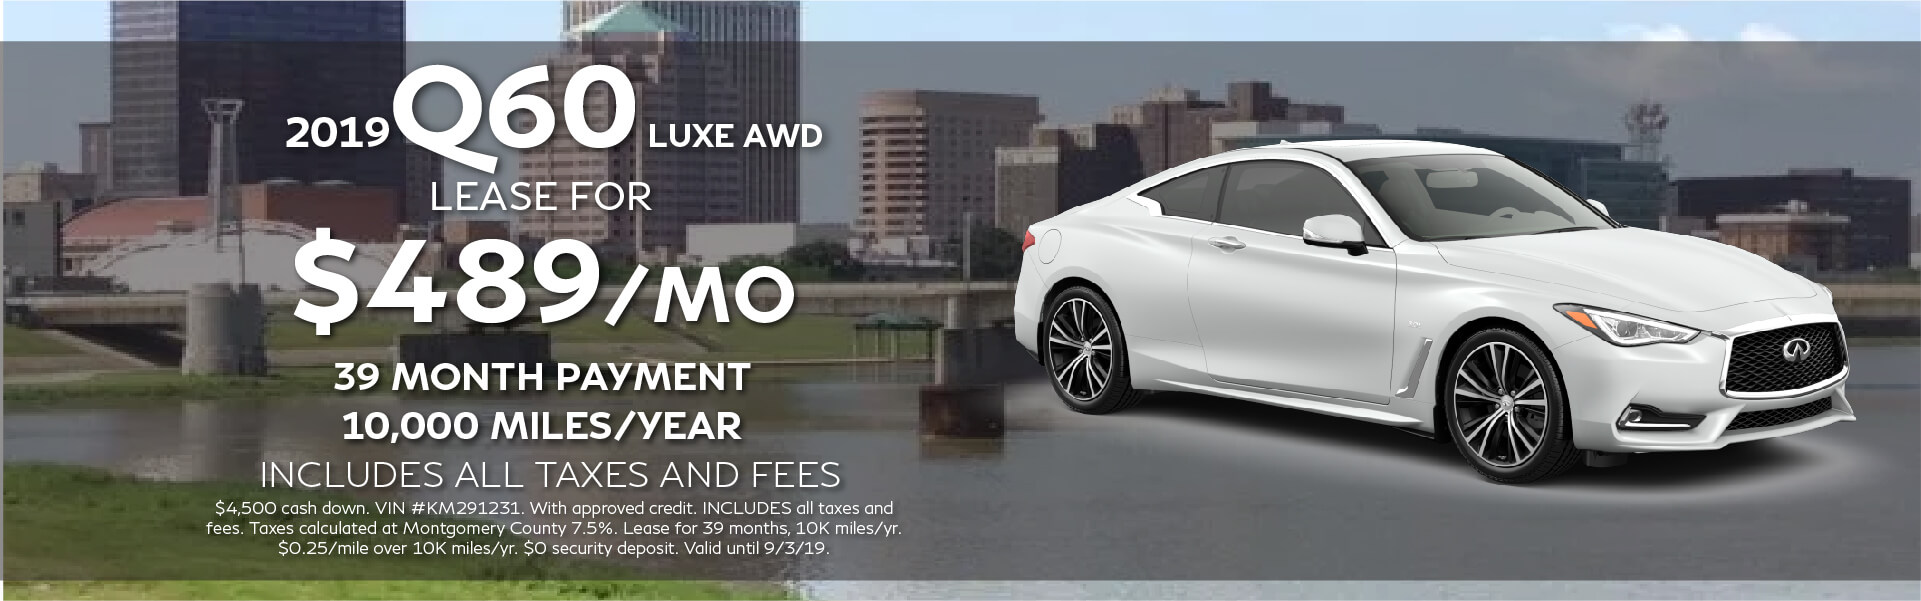 Q60 LUXE - Lease for $489